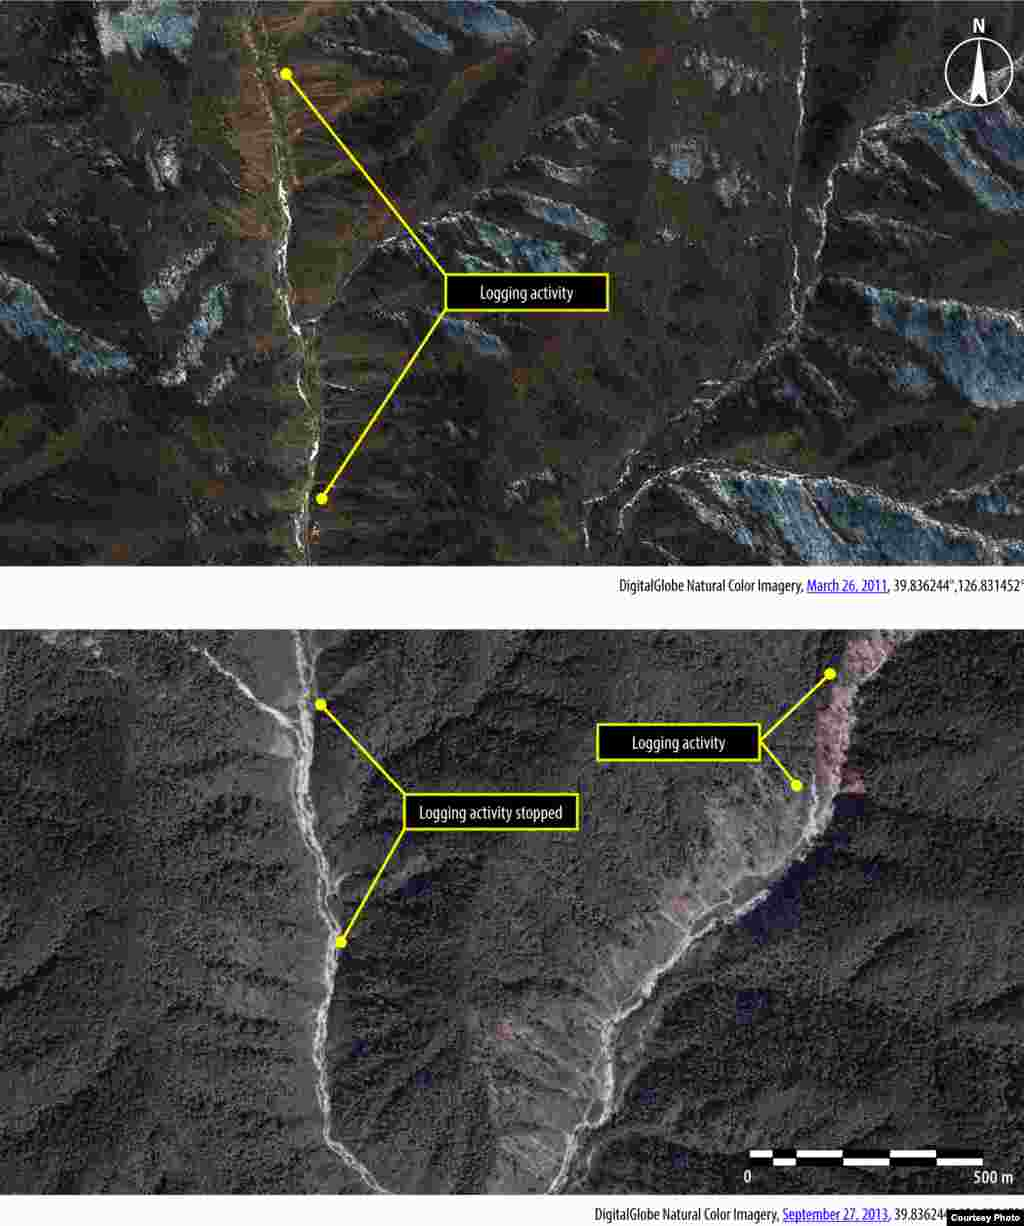 Aerial views of logging at Camp 15 in North Korea in 2011 and 2013. (Amnesty International/DigitalGlobe)